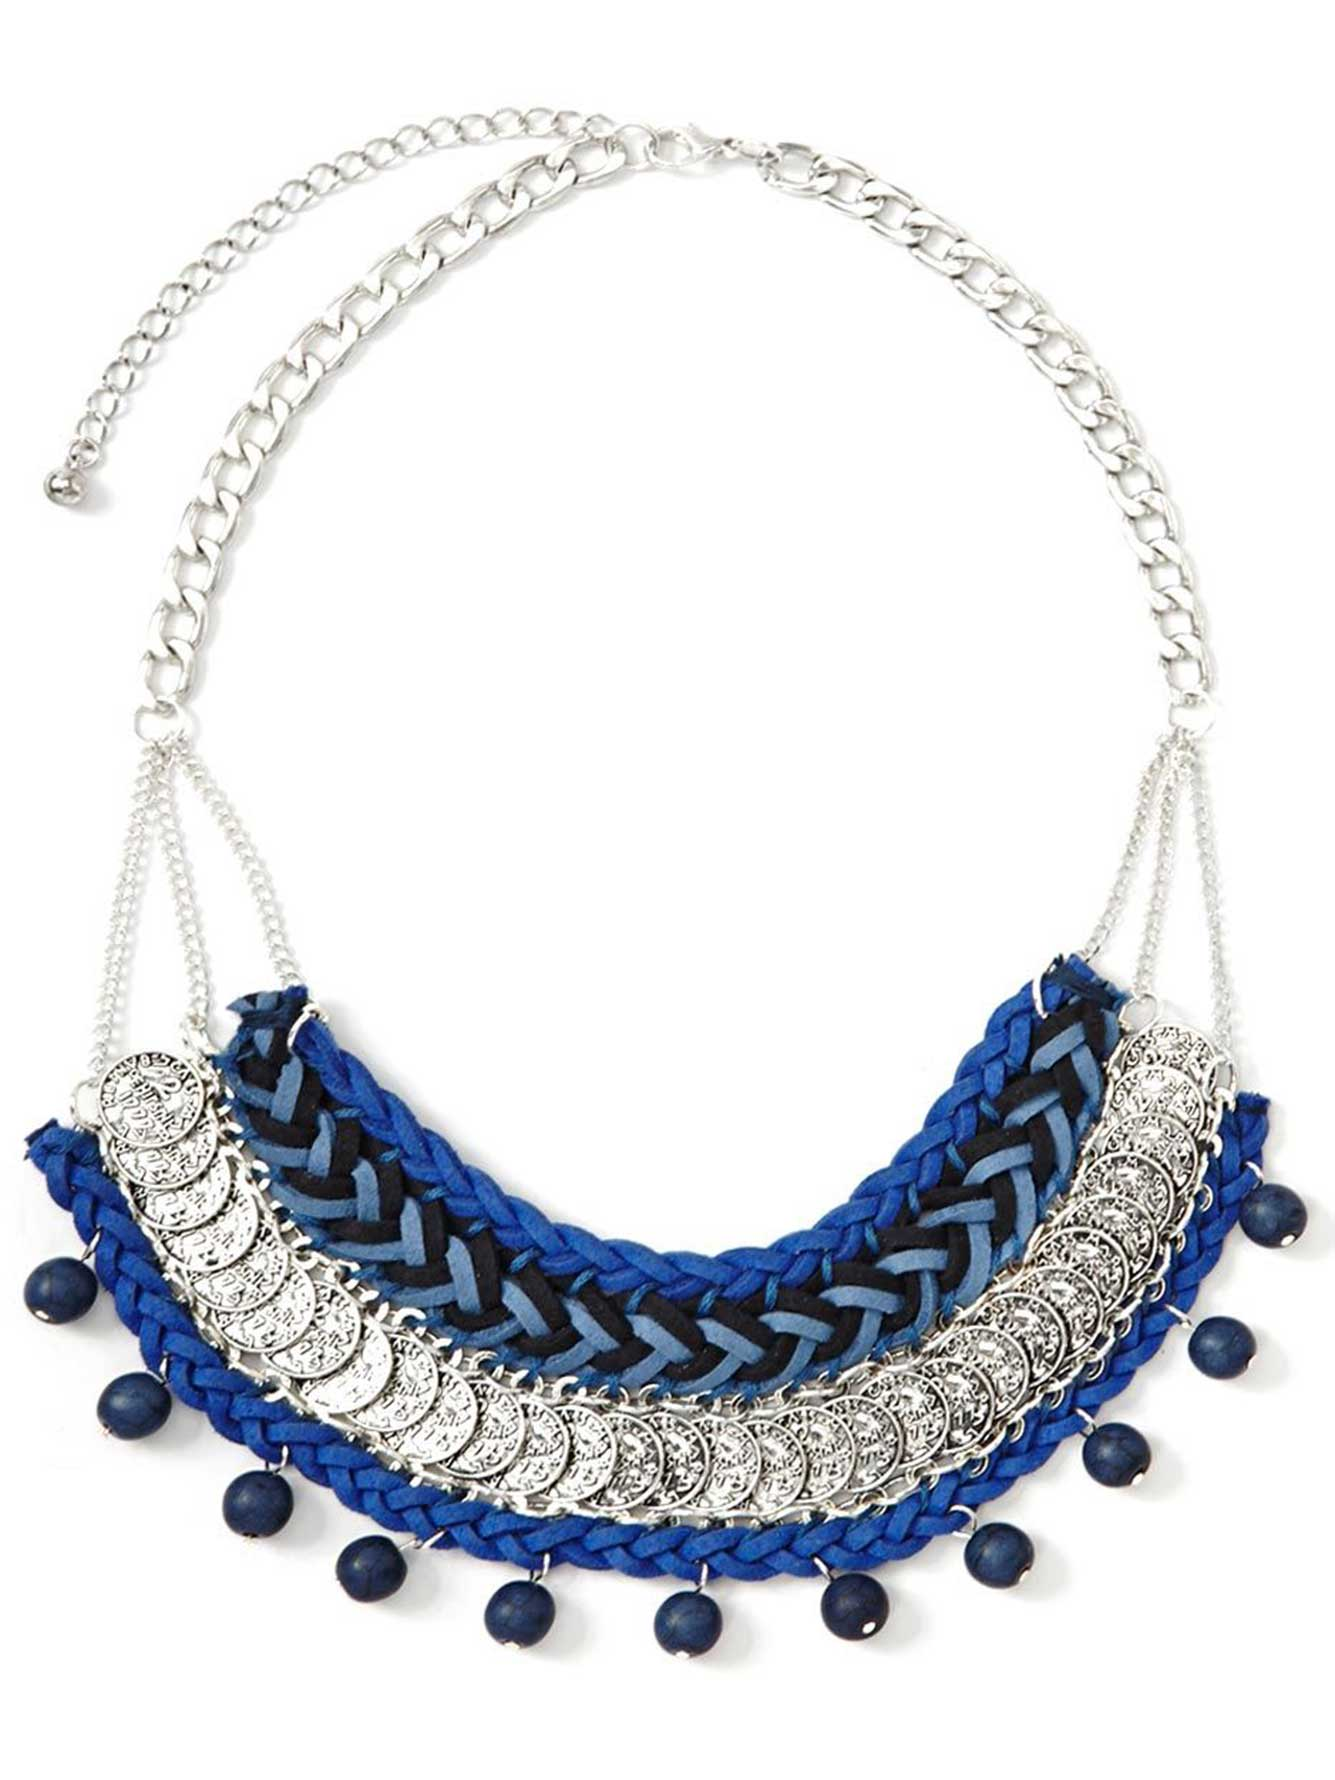 Collier style antique bobo-chic